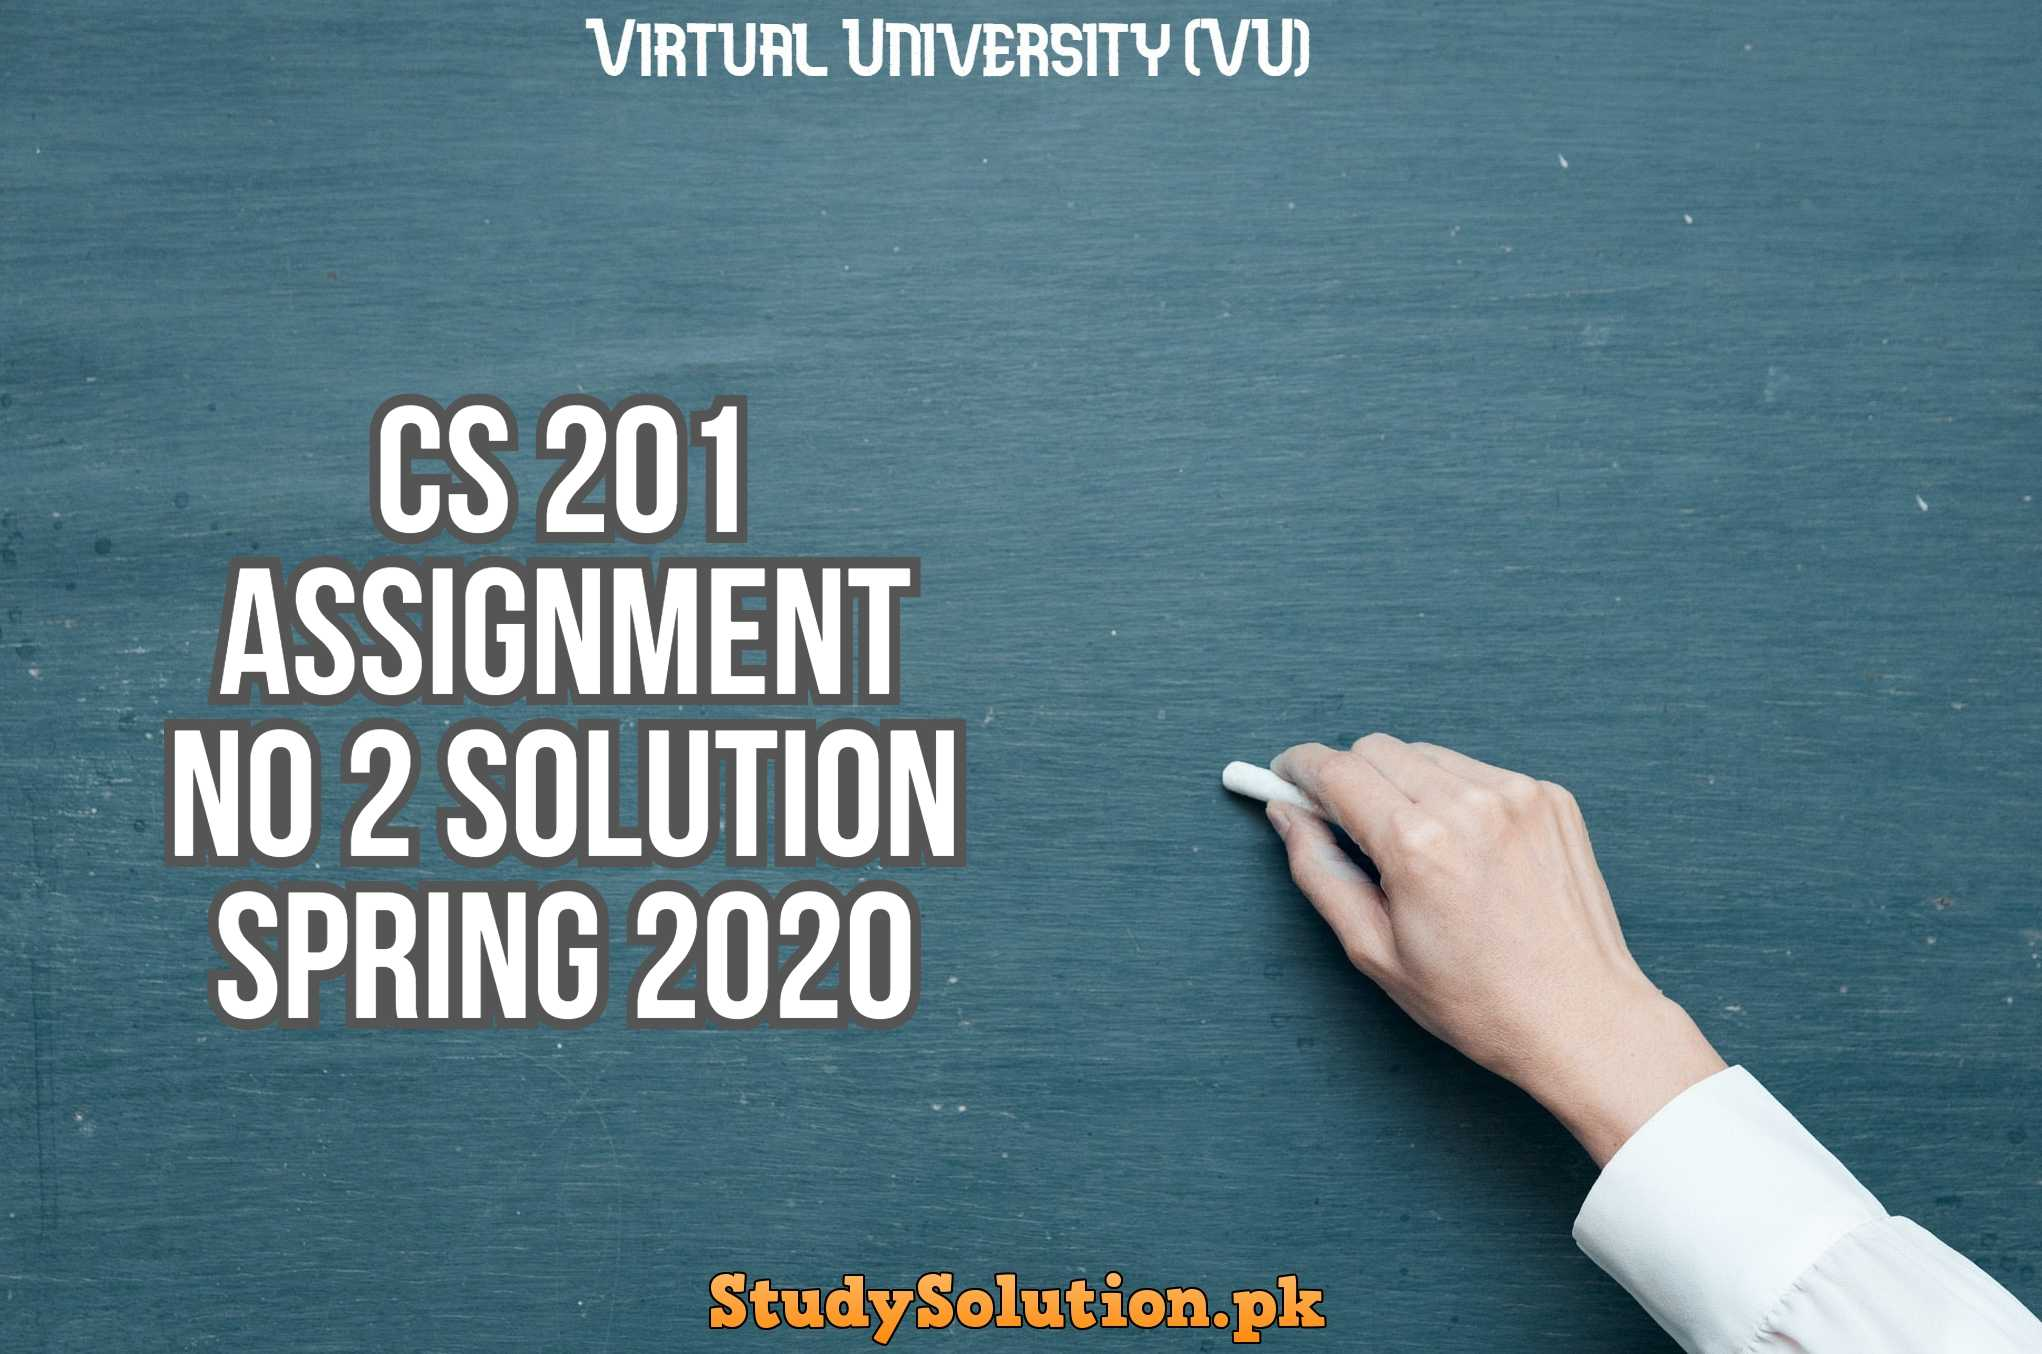 CS 201 Assignment No 2 Solution Spring 2020